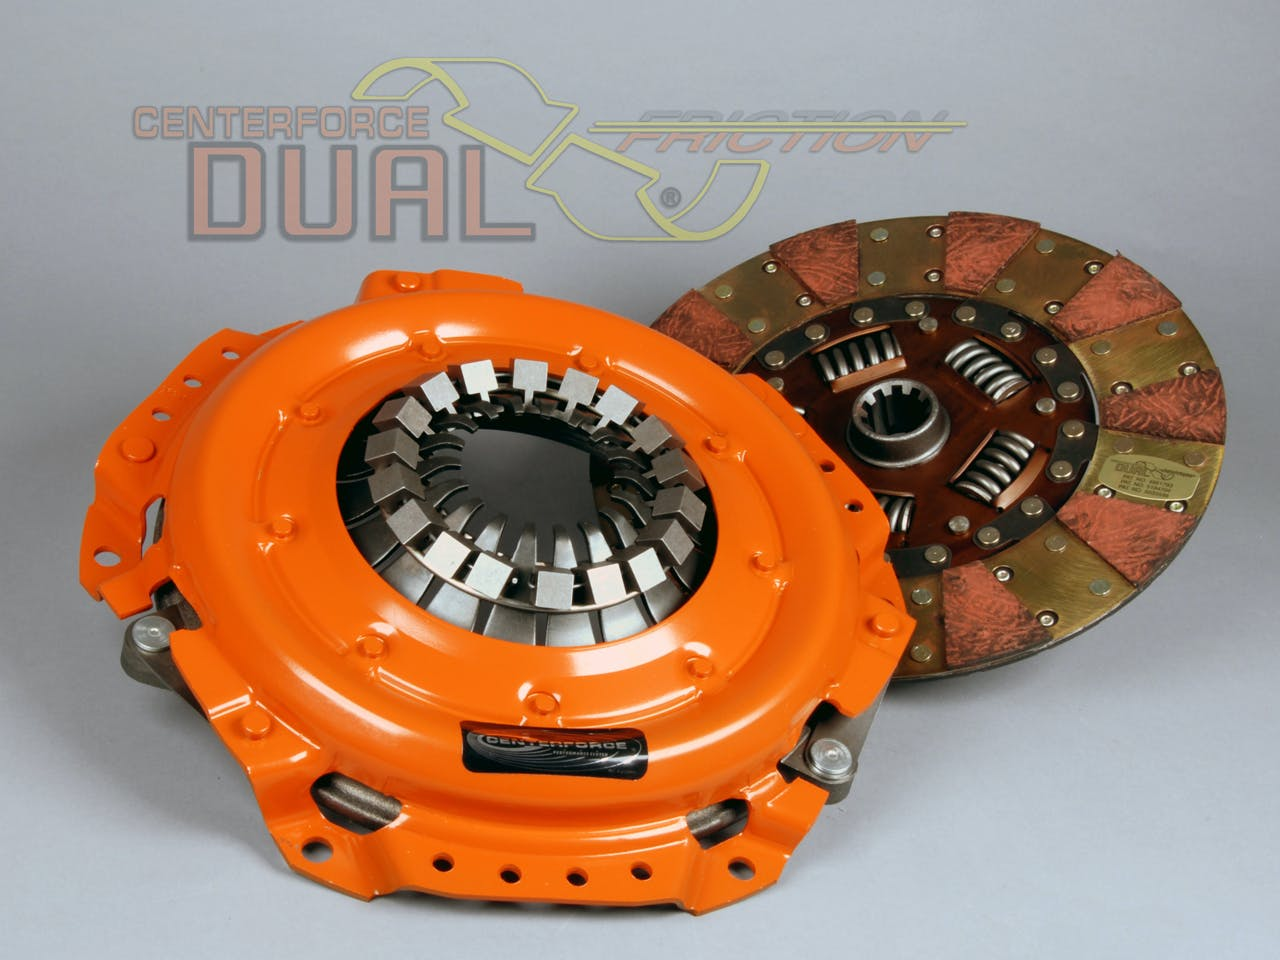 Centerforce DF116116 Dual Friction Clutch Pressure Plate and Disc